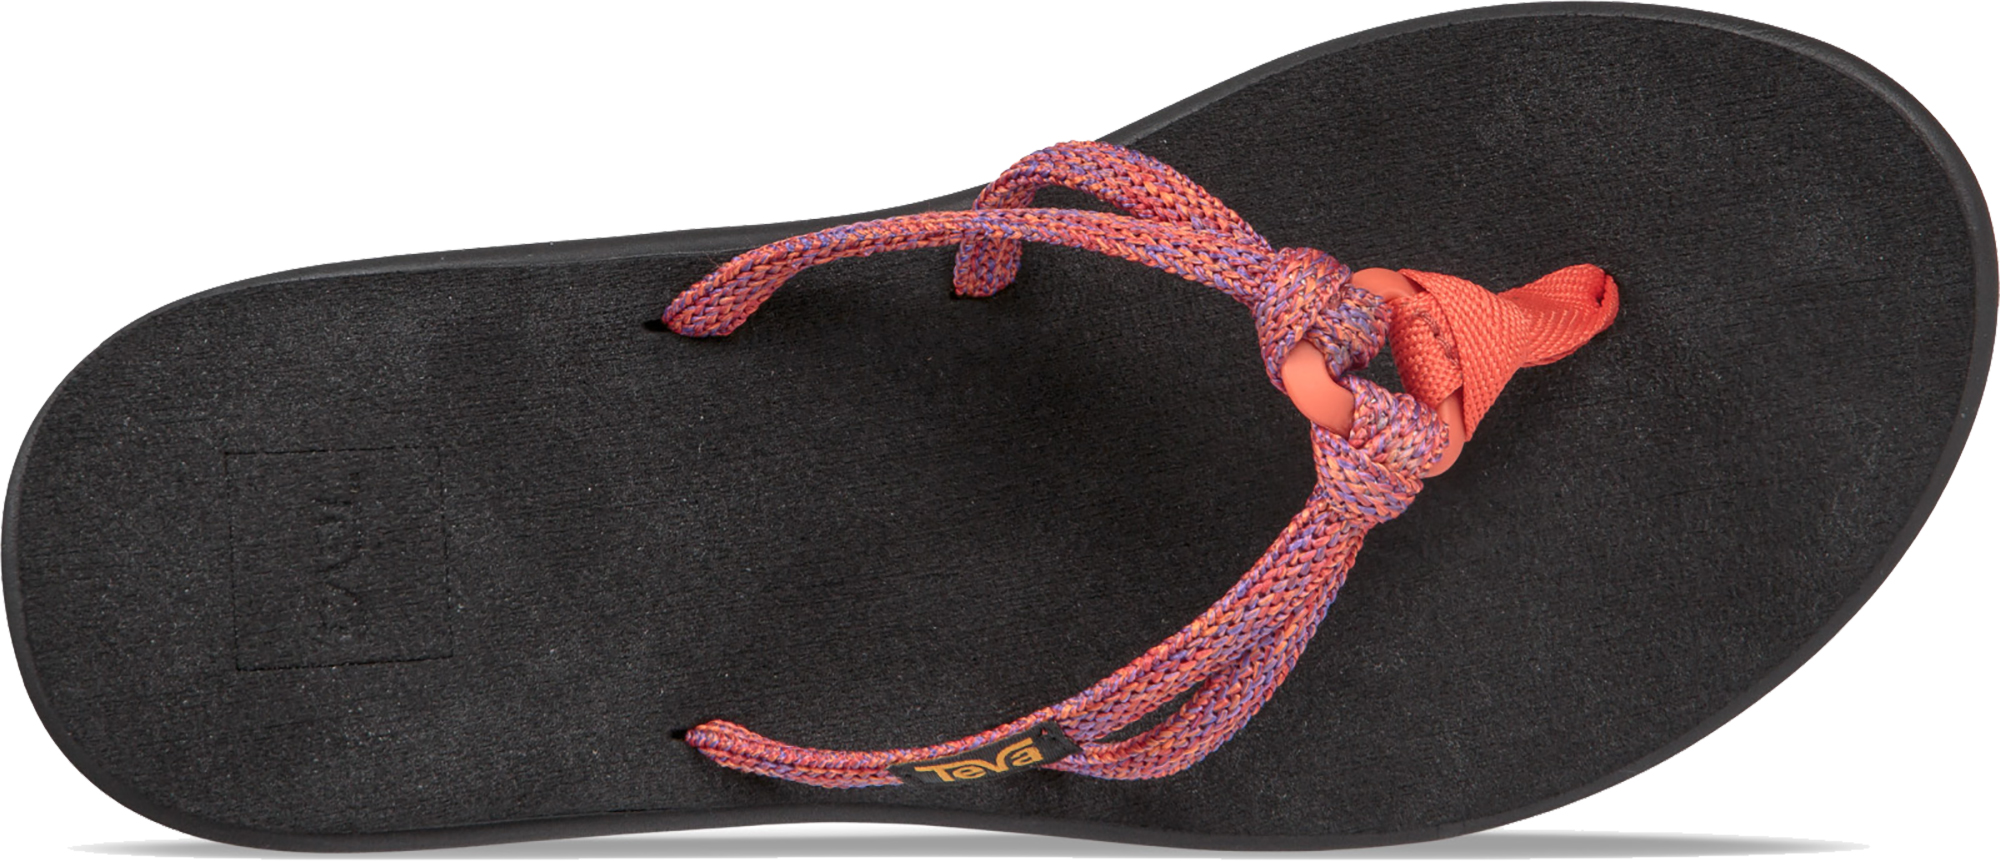 f172e38822582 Teva Women s Voya Tri-flip Flip Flops Comfortable Casual Style Uk4  Pink purple. About this product. Picture 1 of 5  Picture 2 of 5  Picture 3  of 5 ...